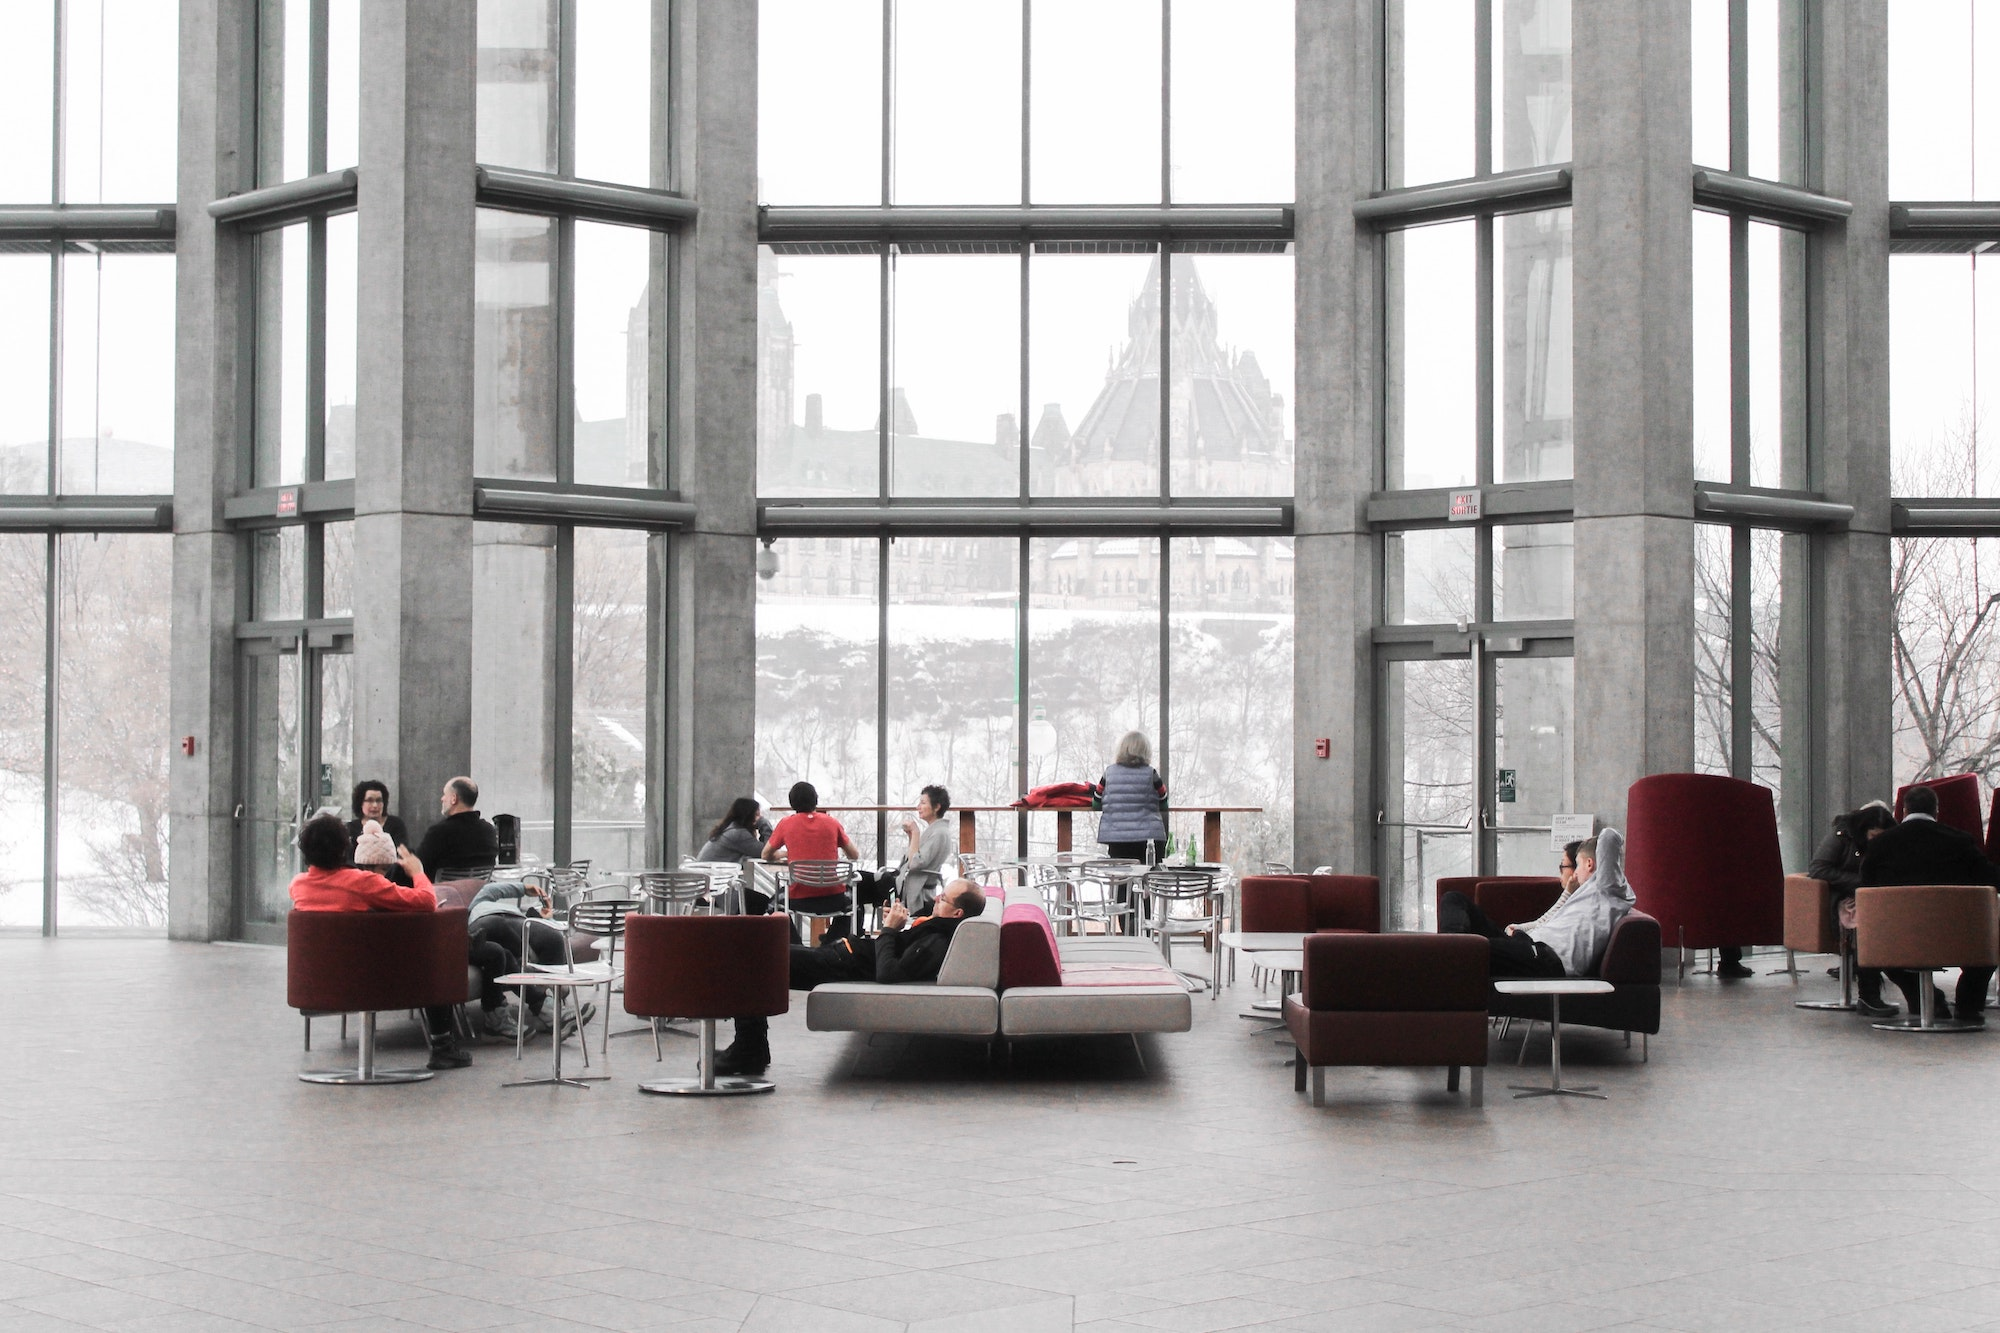 Shared Office Spaces & Coworking spaces / YAROOMS